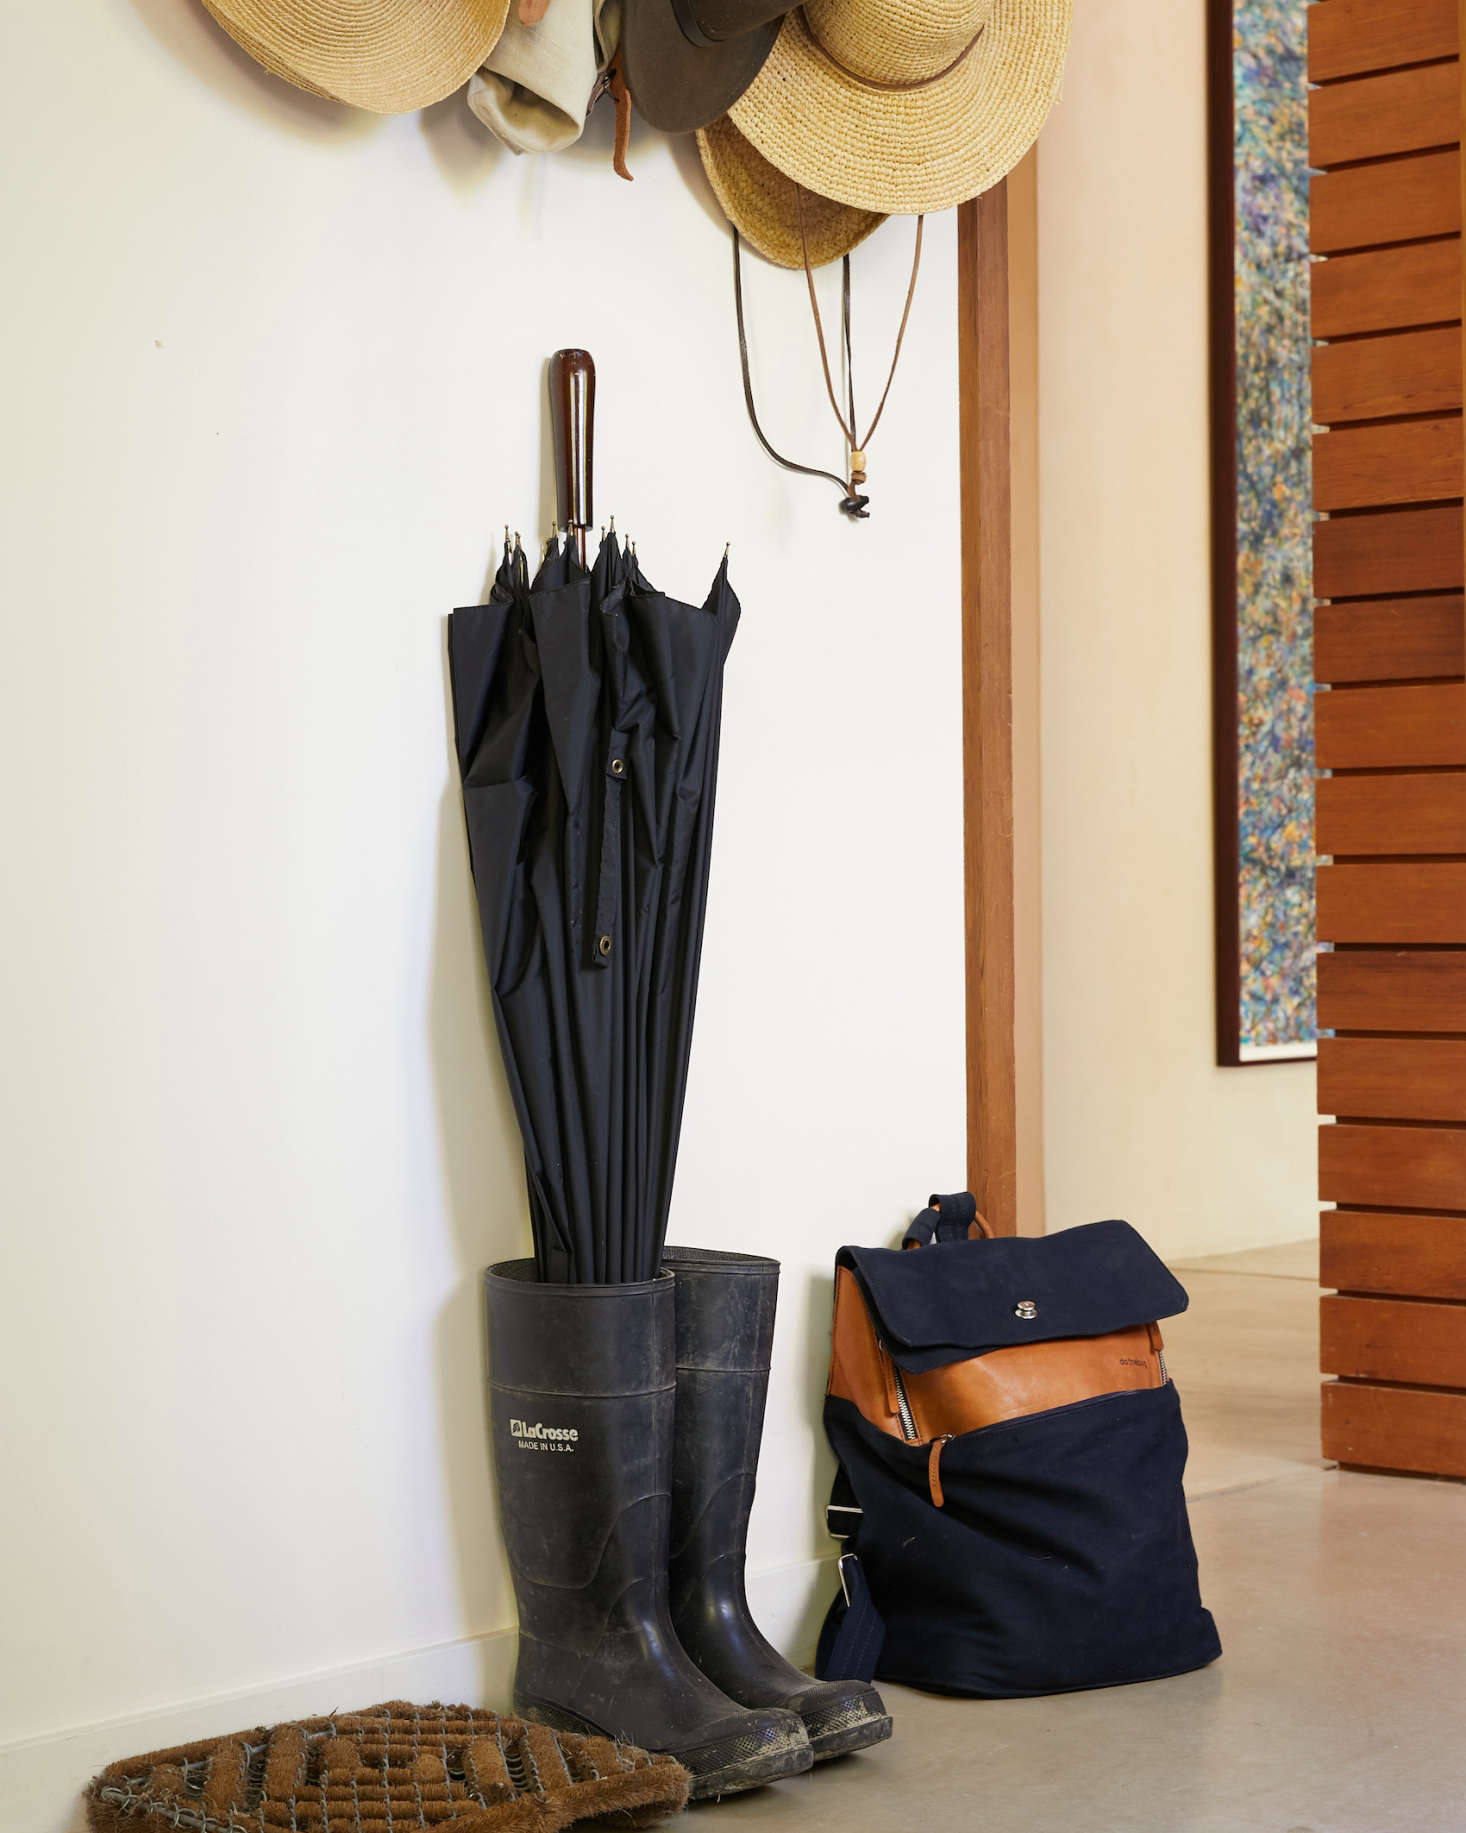 Inside the paneled volume is a mudroom to store coats, boots, and hats. Singer&#8